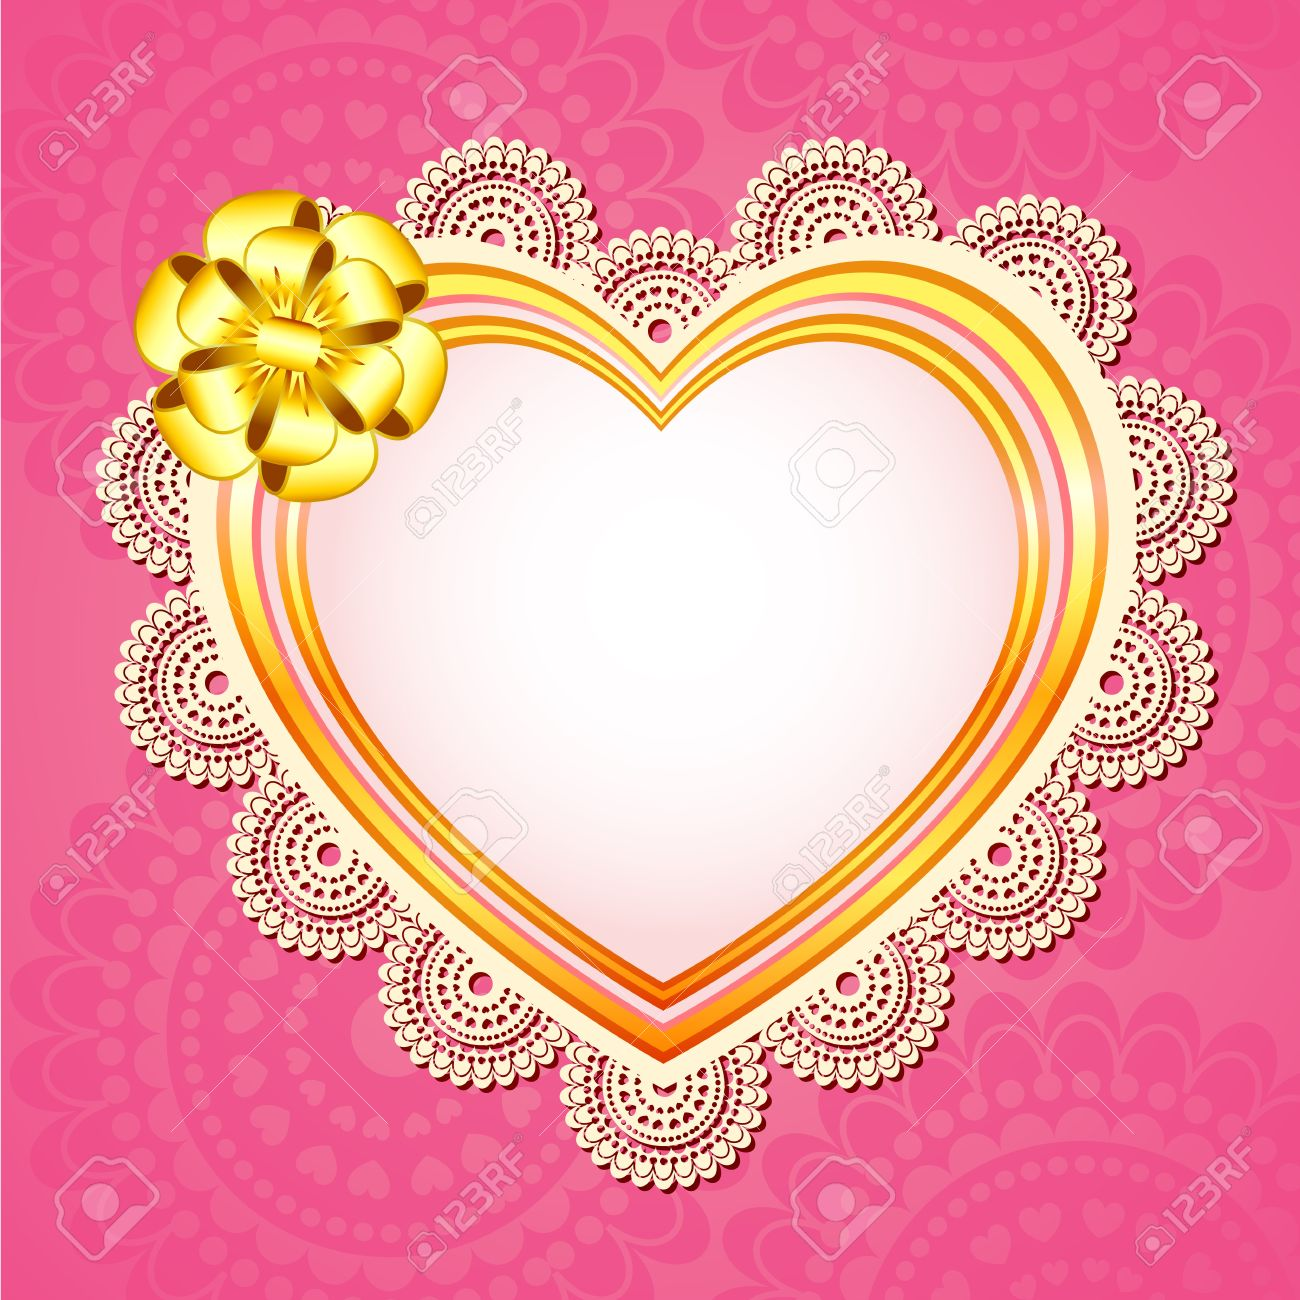 Love Frame Royalty Free Cliparts, Vectors, And Stock Illustration ...